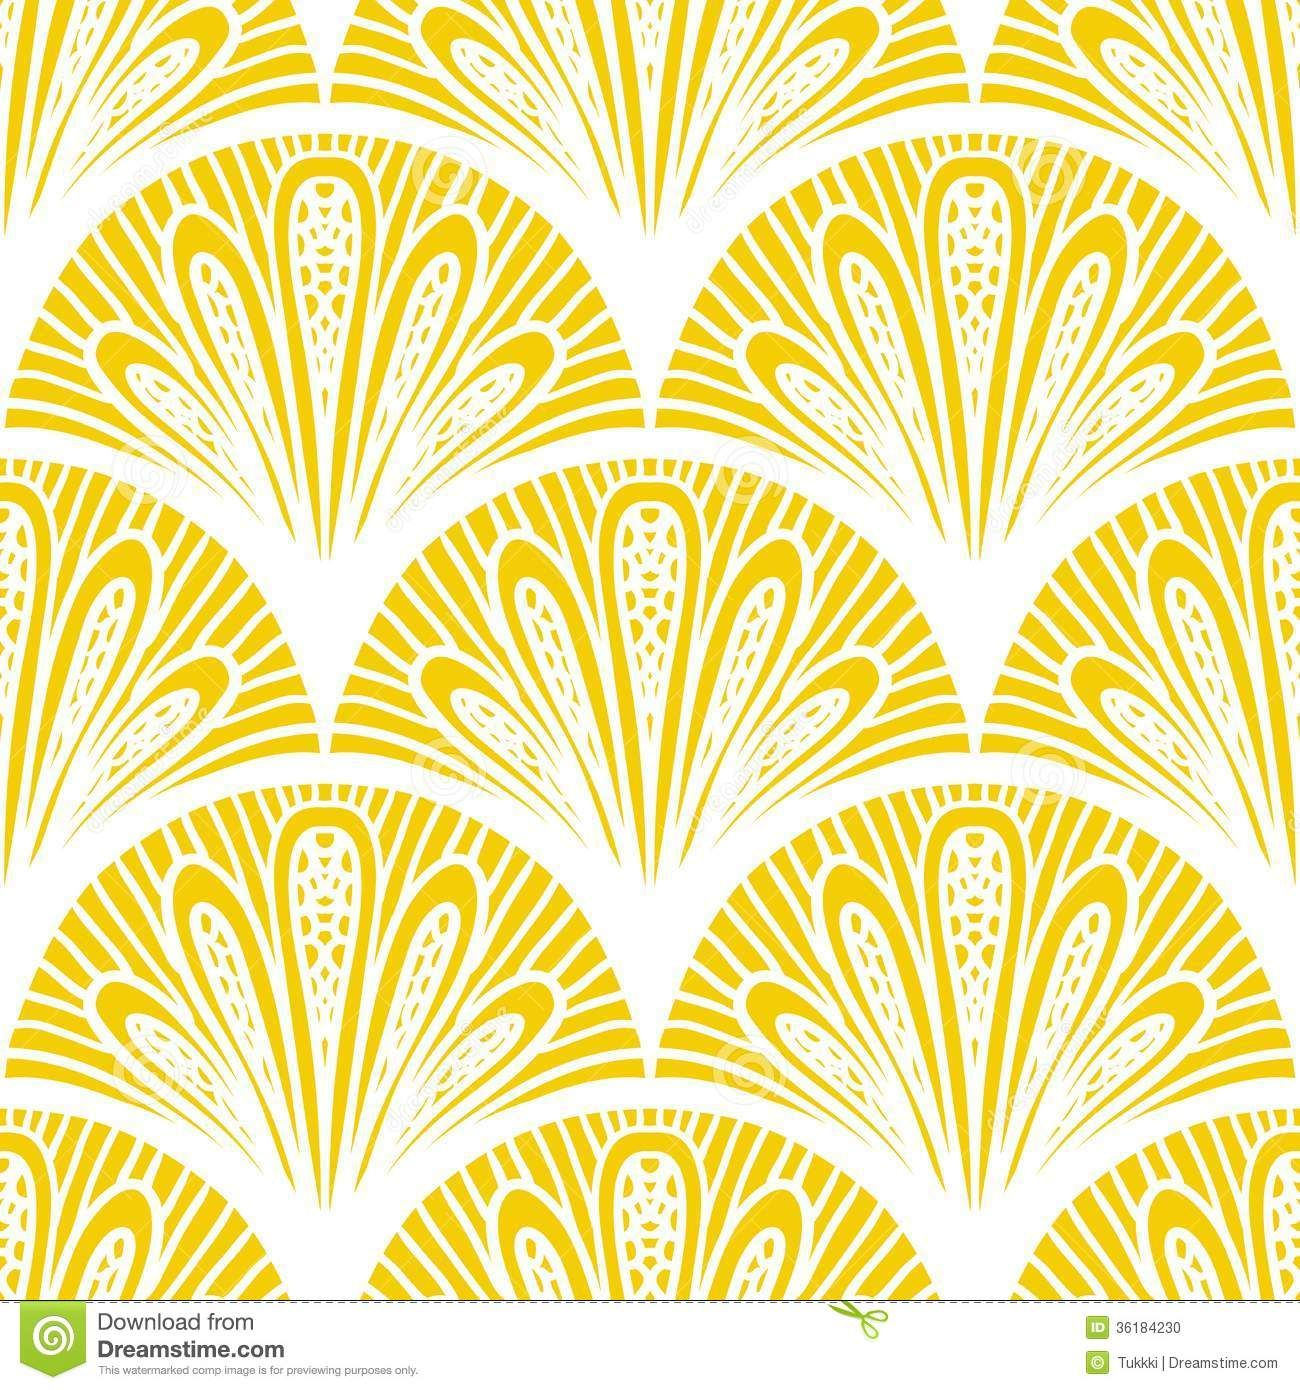 Art Deco Vector Geometric Pattern In Bright Yellow - Download From ...